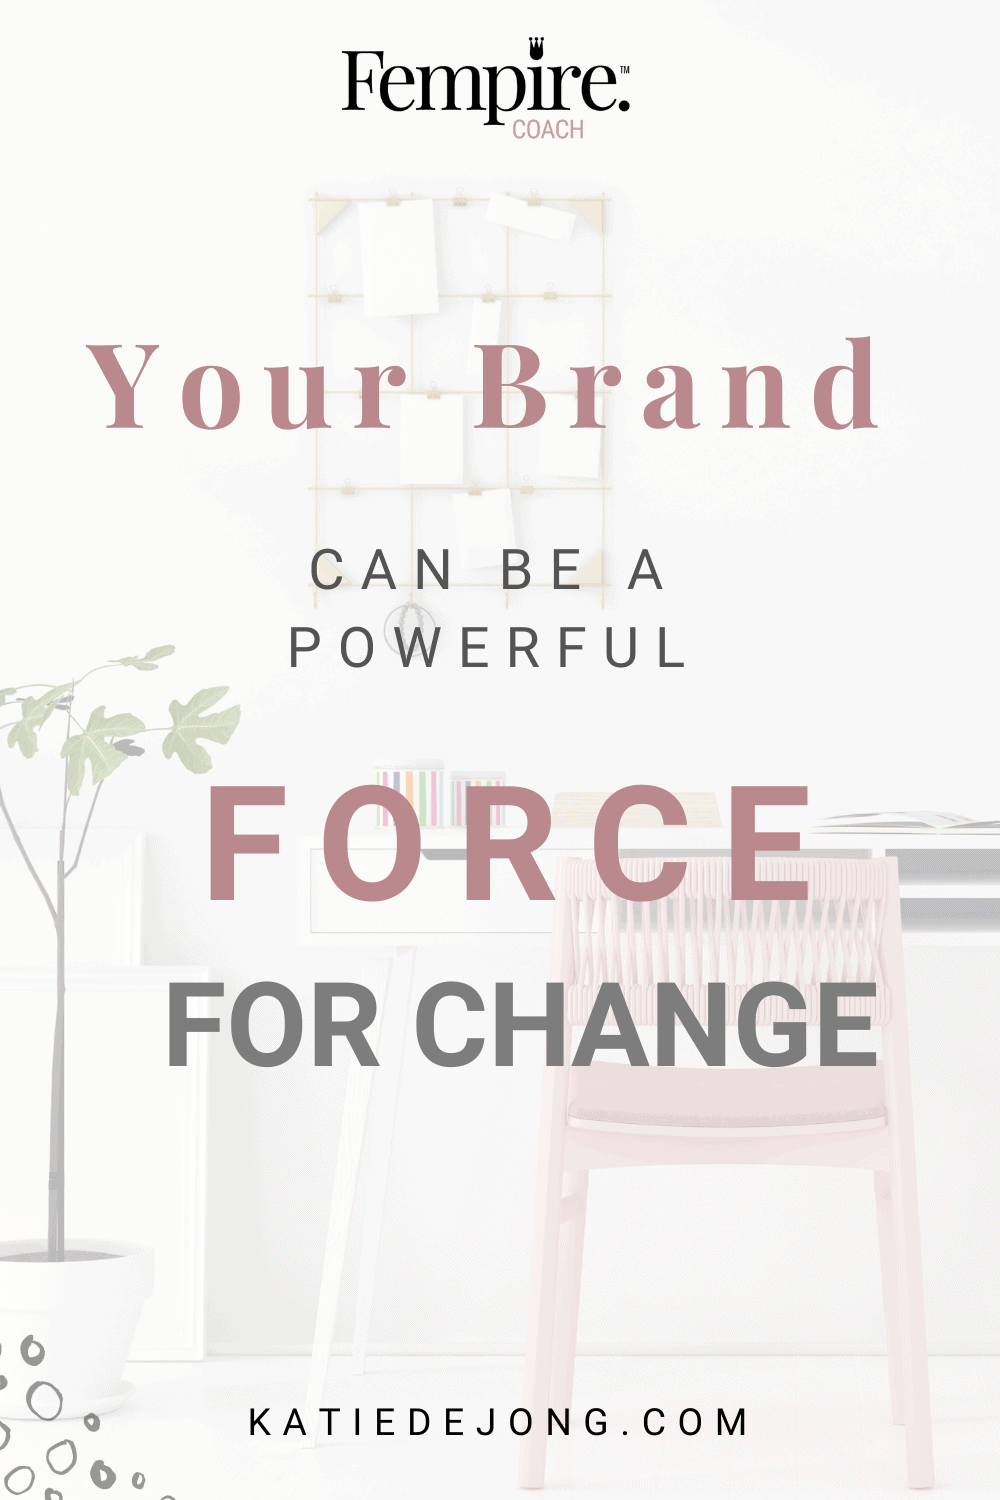 Research shows consumers want to buy from brands who are making a positive difference. What is your business WHY and are you sharing it regularly with your audience? It's the fastest route to profitability. Read on to discover how. #authenticmarketing #authenticity #authenticbusiness #smallbusiness #businesscoach #fempire #fempirecoach